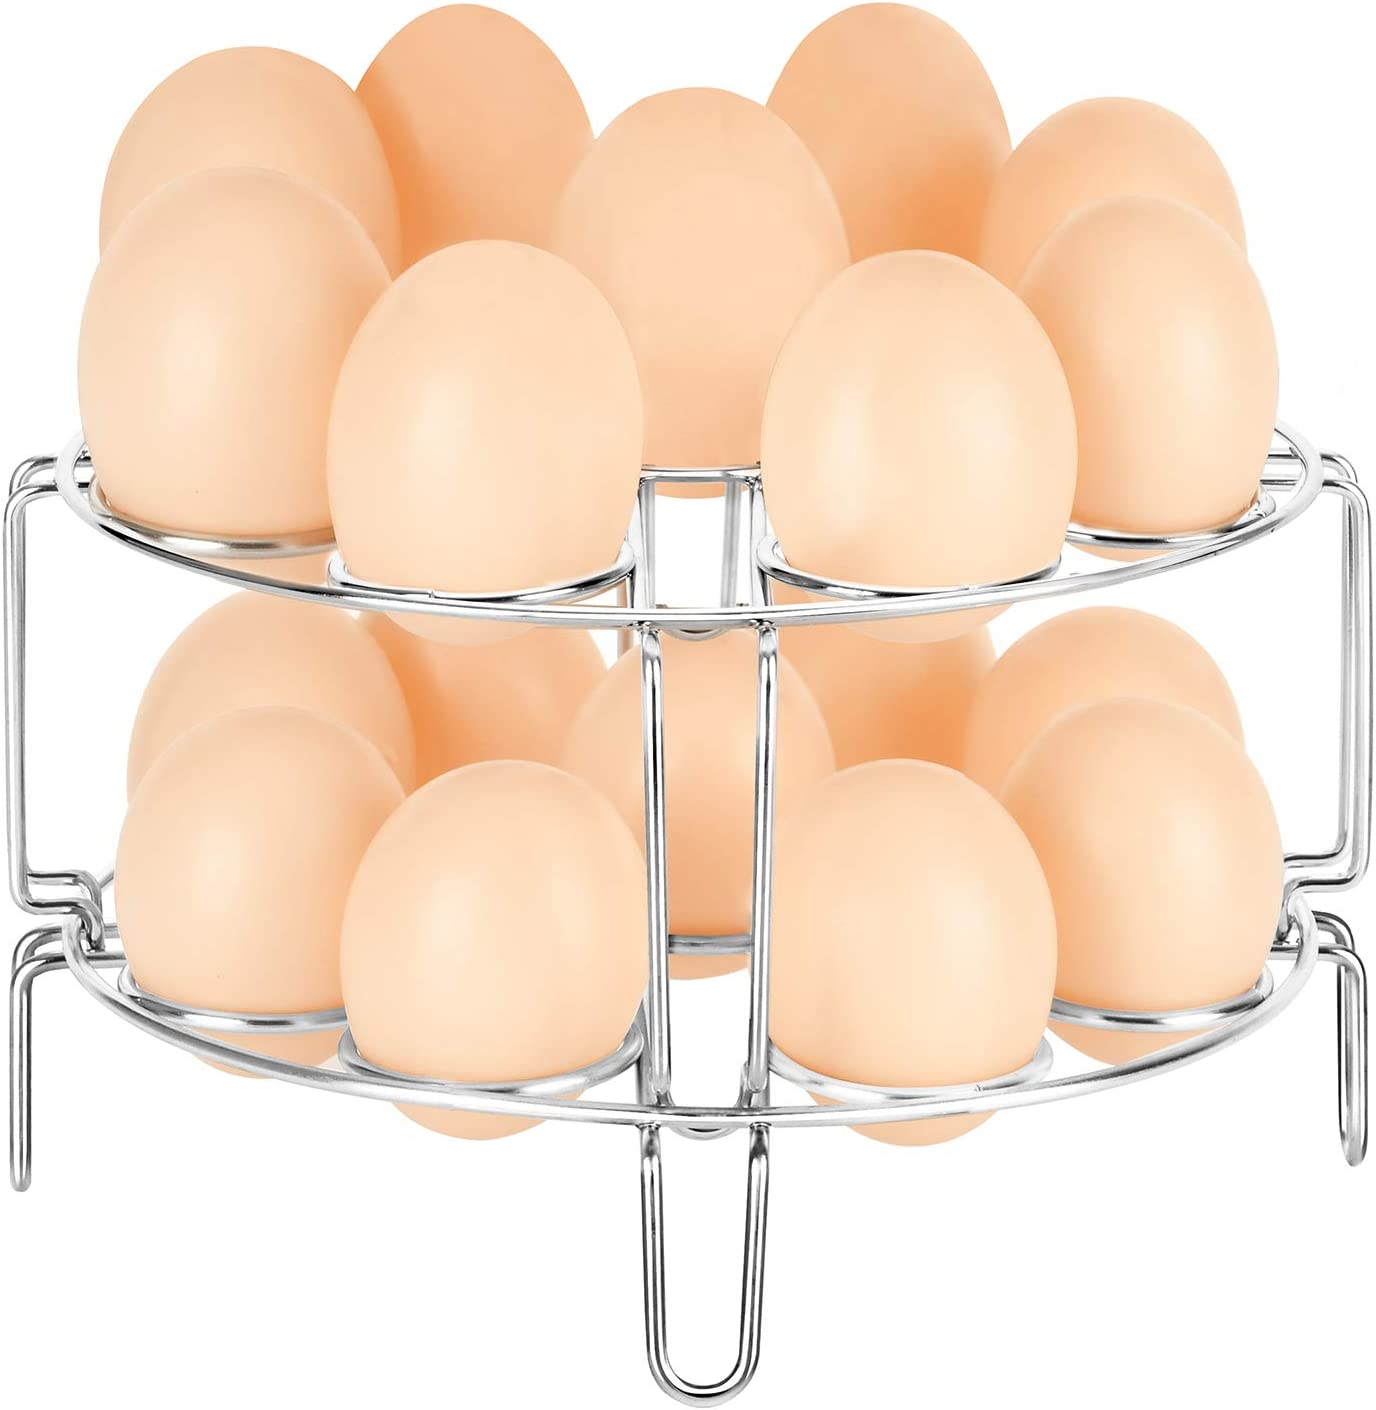 YIMI Egg Steamer Rack 18 Holes, Stackable Steaming Rack Stand for 6,8Qt Instant Pot, Stainless Steel Food Steaming Basket Holder, 2pcs